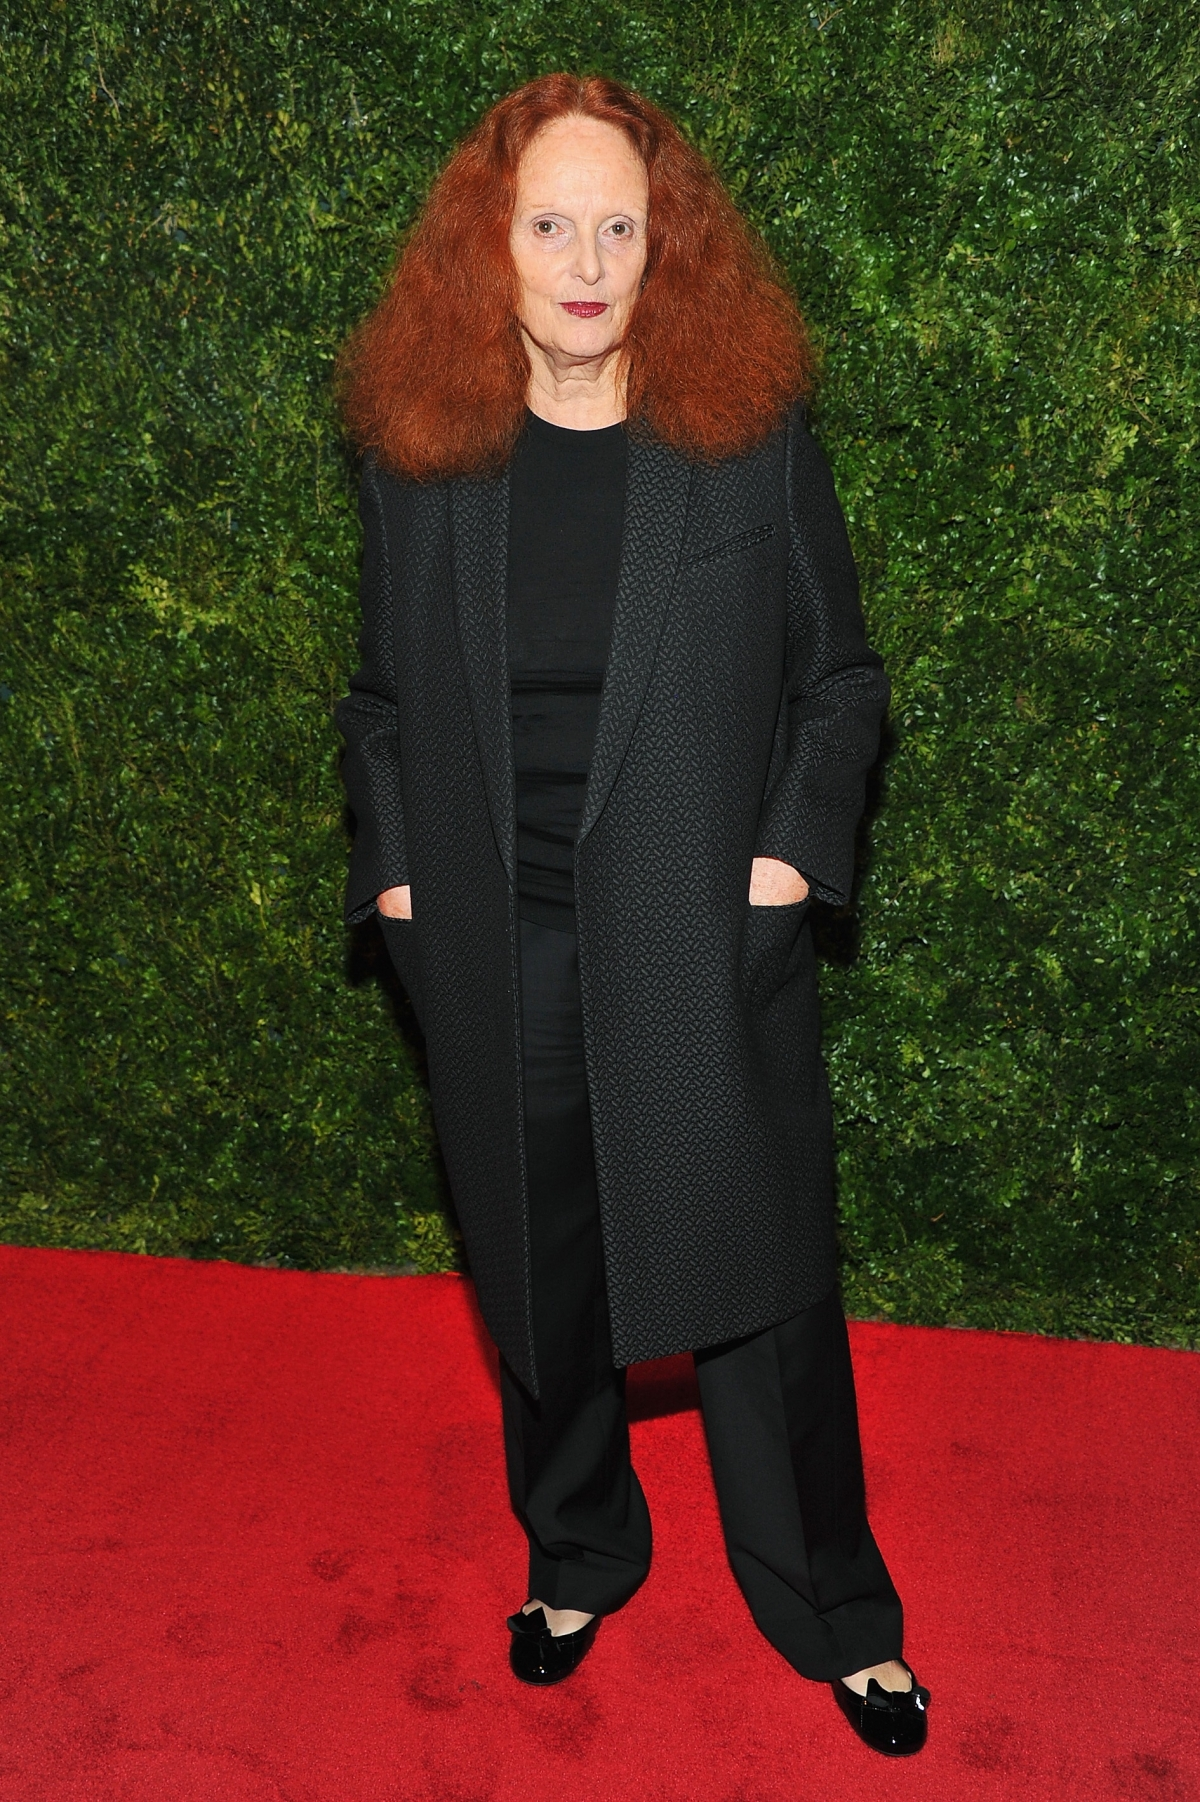 Grace Coddington to step down from Vogue